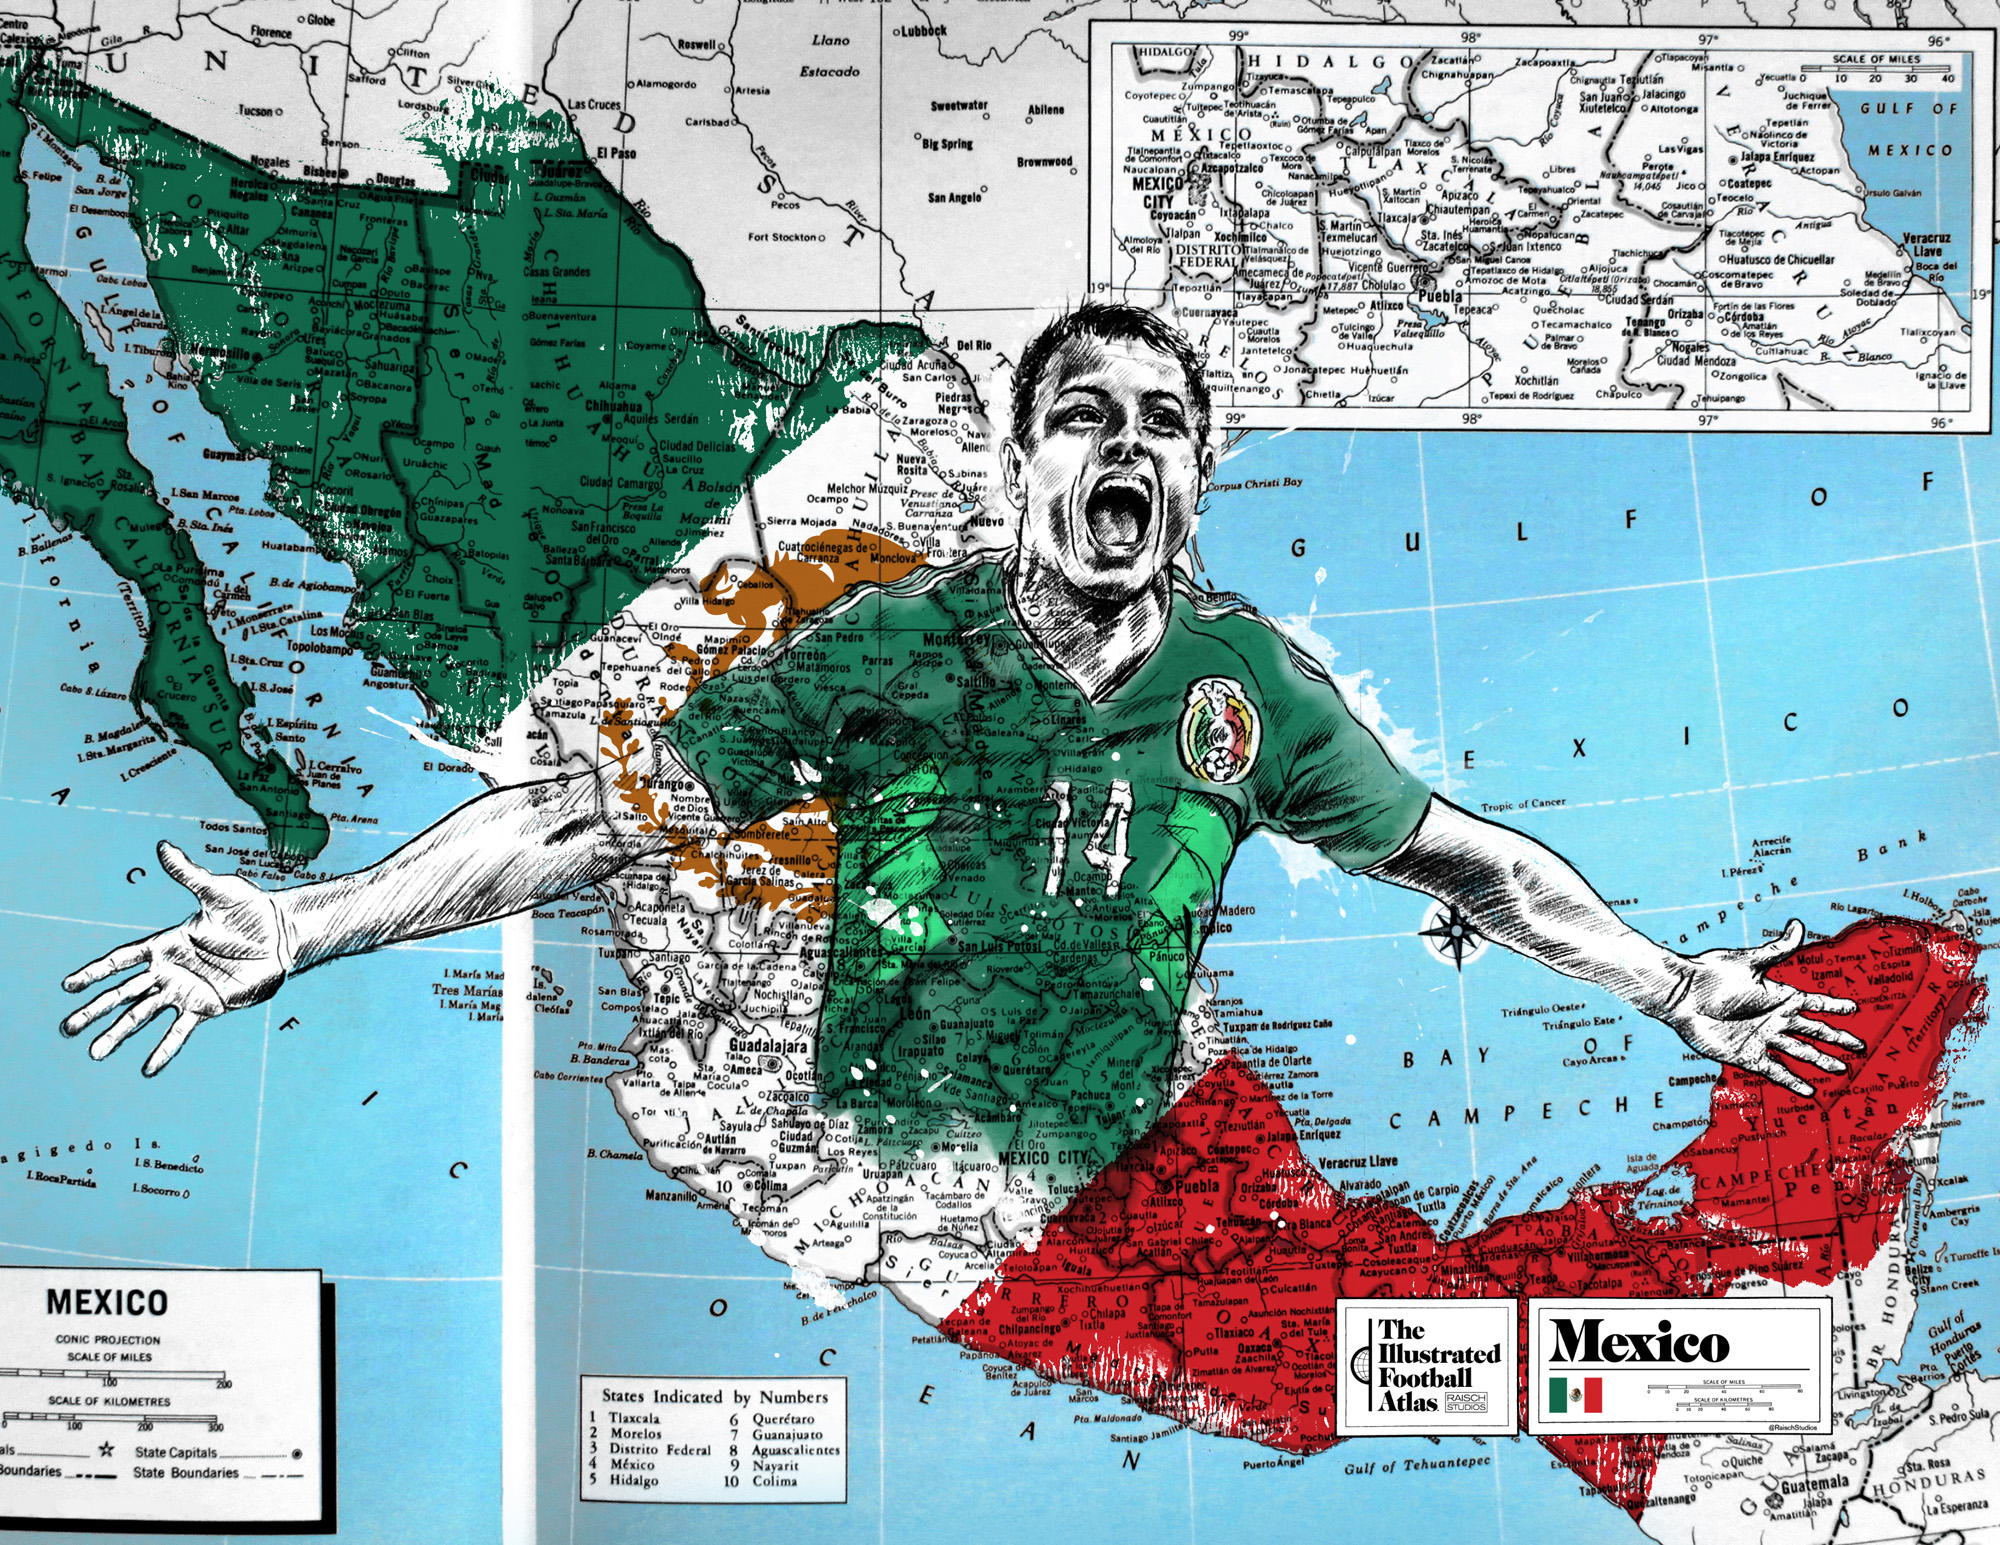 Mexico_FootballAtlas_HighRes-Raisch-A.jpg